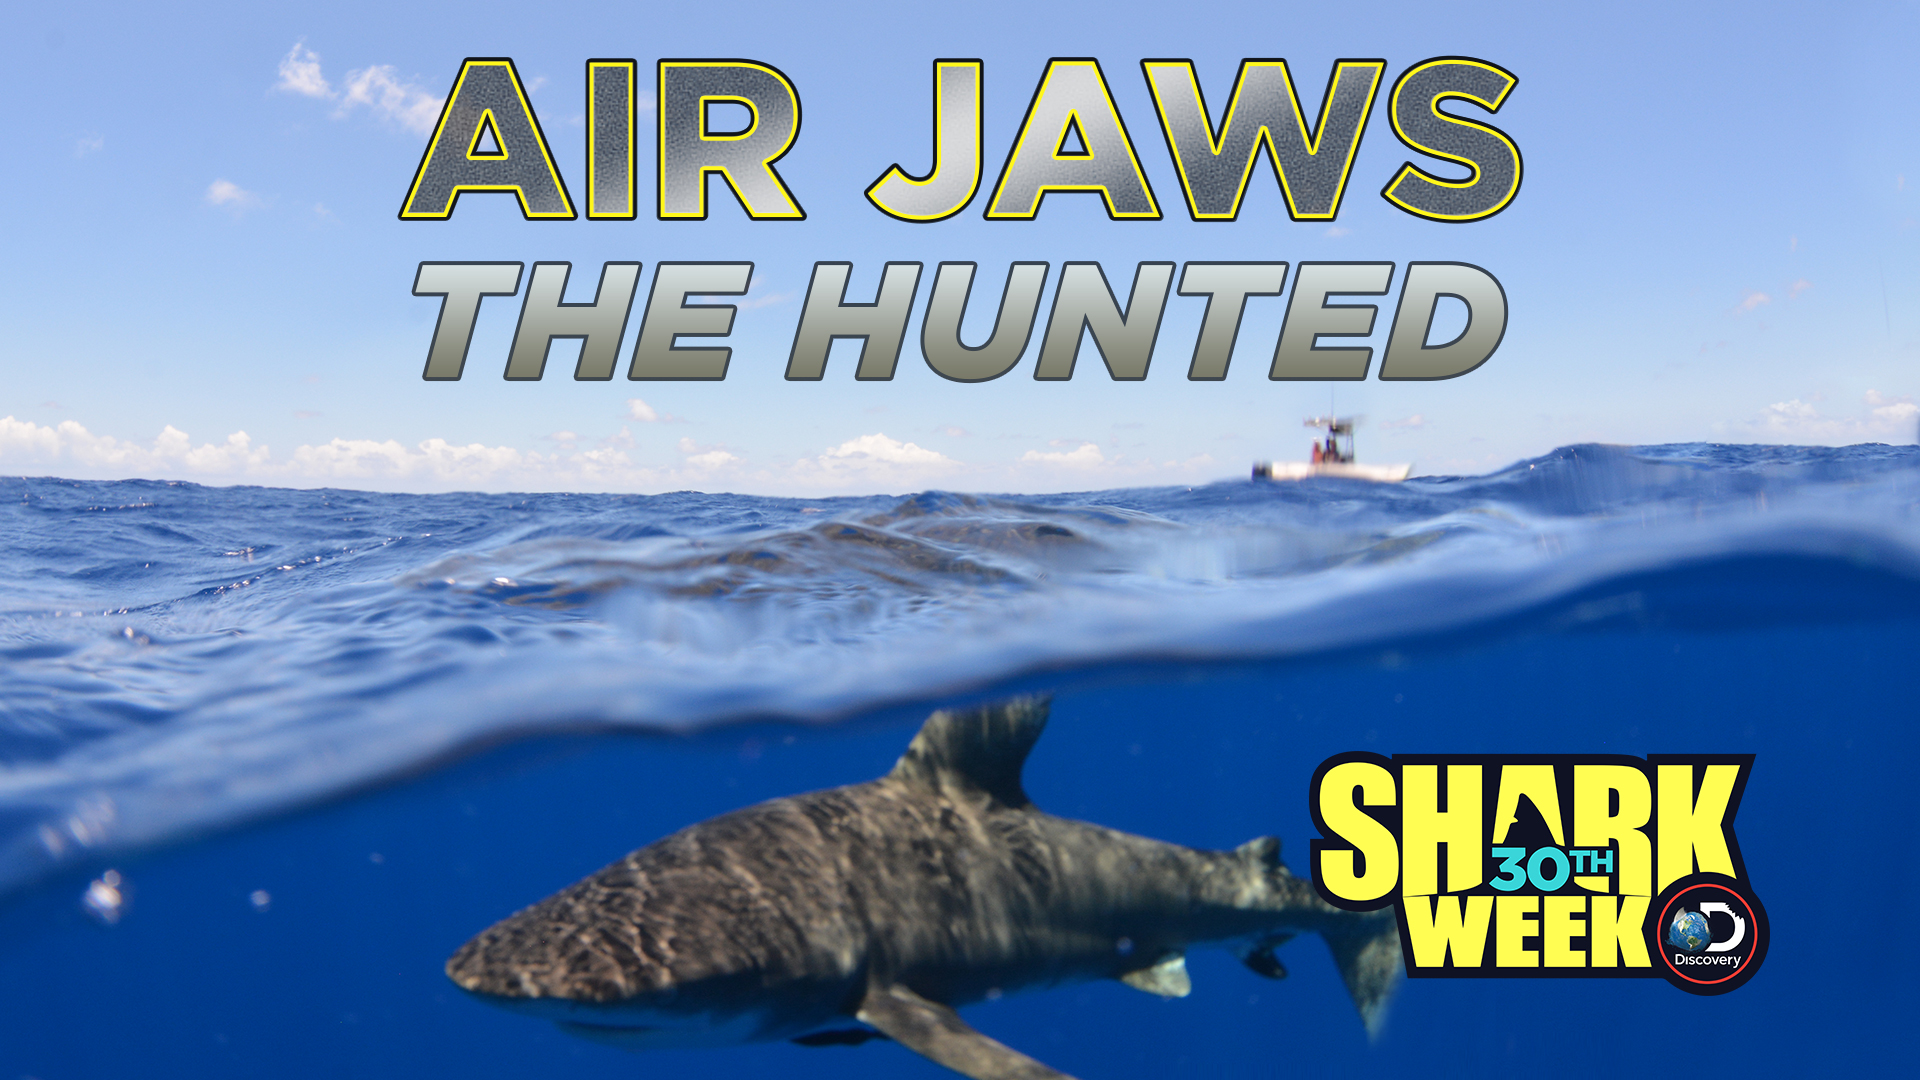 Air Jaws: The Hunted